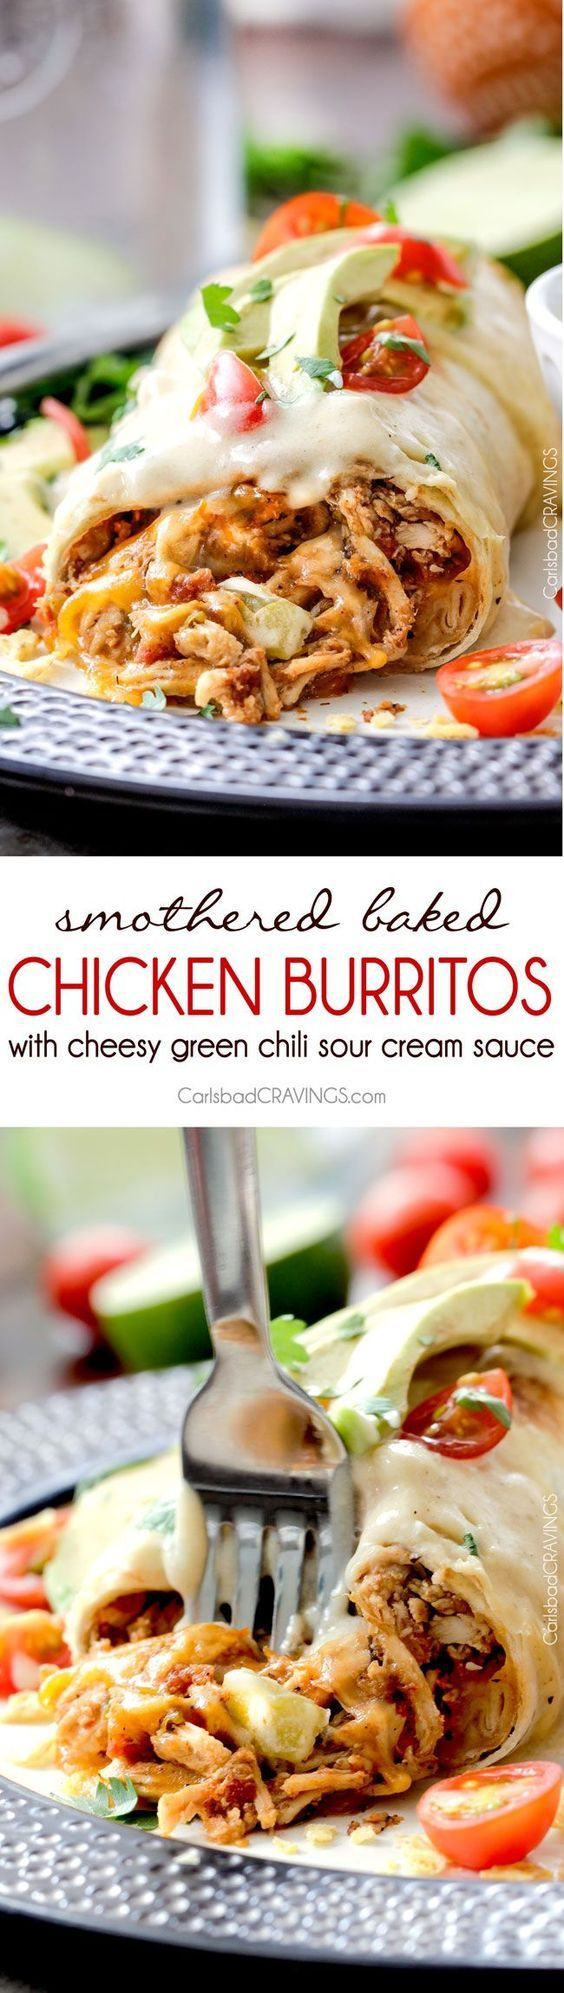 """Smothered Baked Chicken Burritos AKA """"skinny chimichangas"""" are restaurant delicious without all the calories! made super easy by stuffing with the BEST slow cooker Mexican chicken and then baked to golden perfection and smothered in most incredi"""